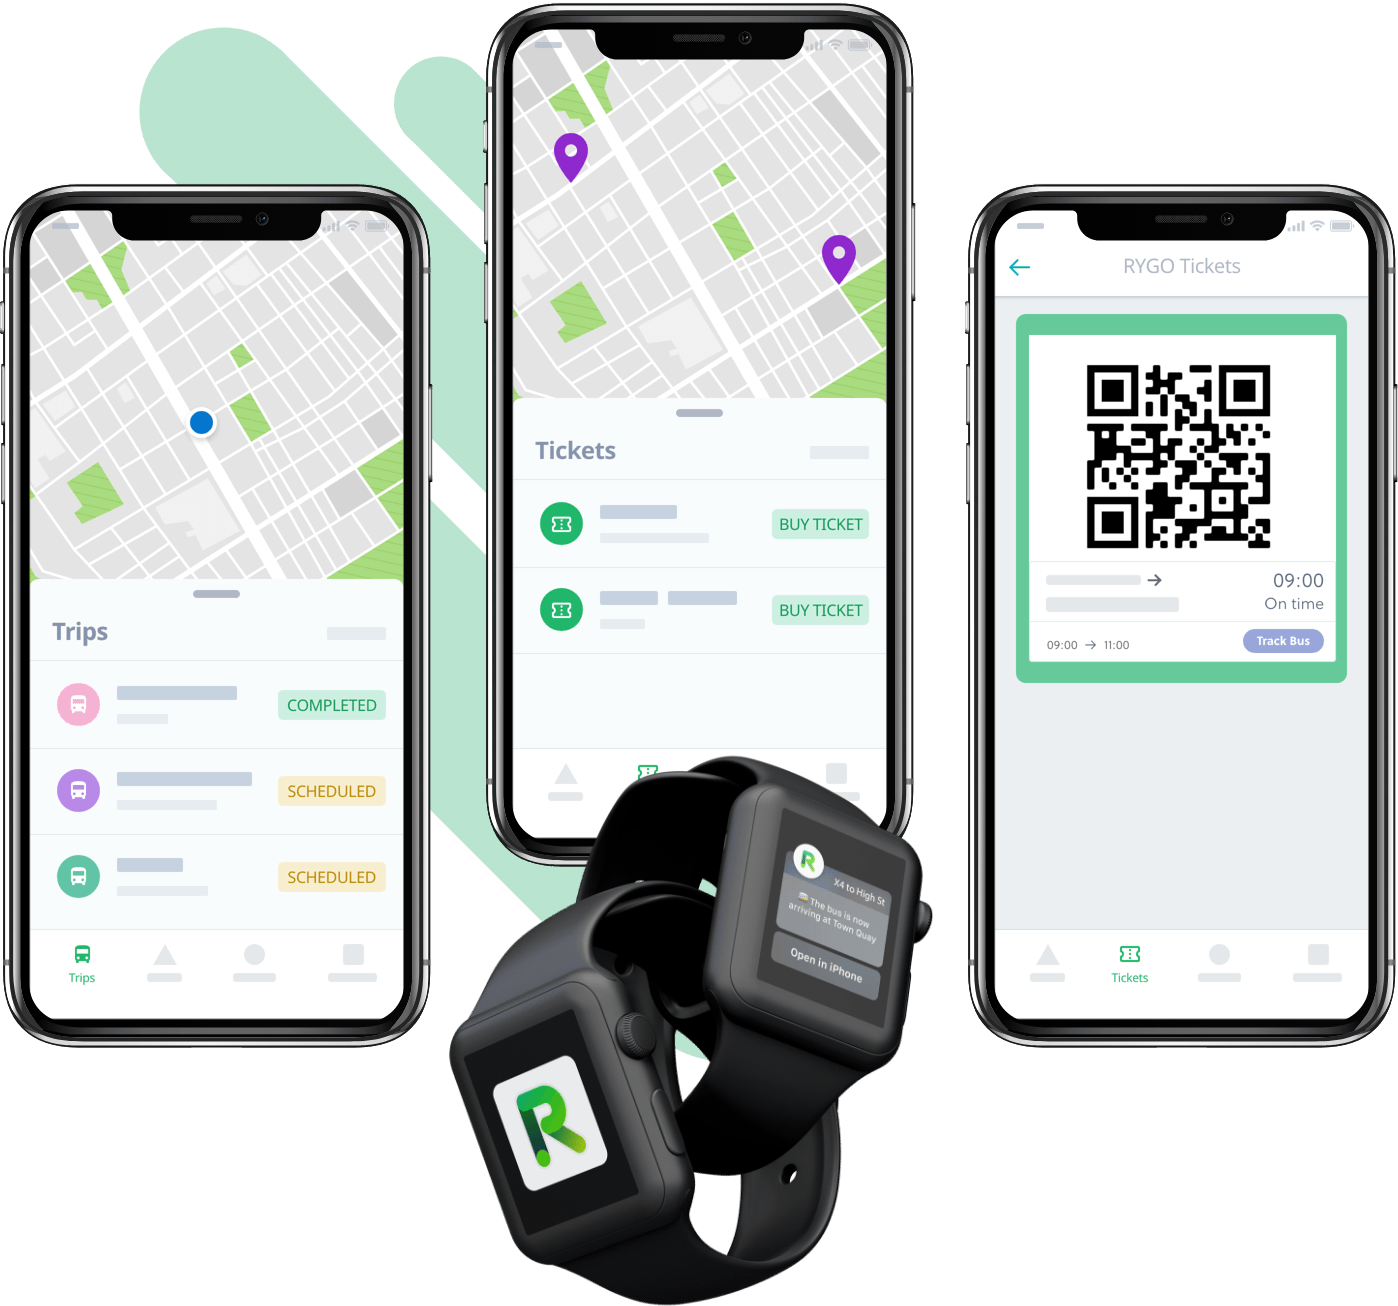 Devices Mockup of the Rygo product showcasing the Passengers app screens when the user can see the location of the bus, buy tickets and get digital tickets also on the watch and wereables